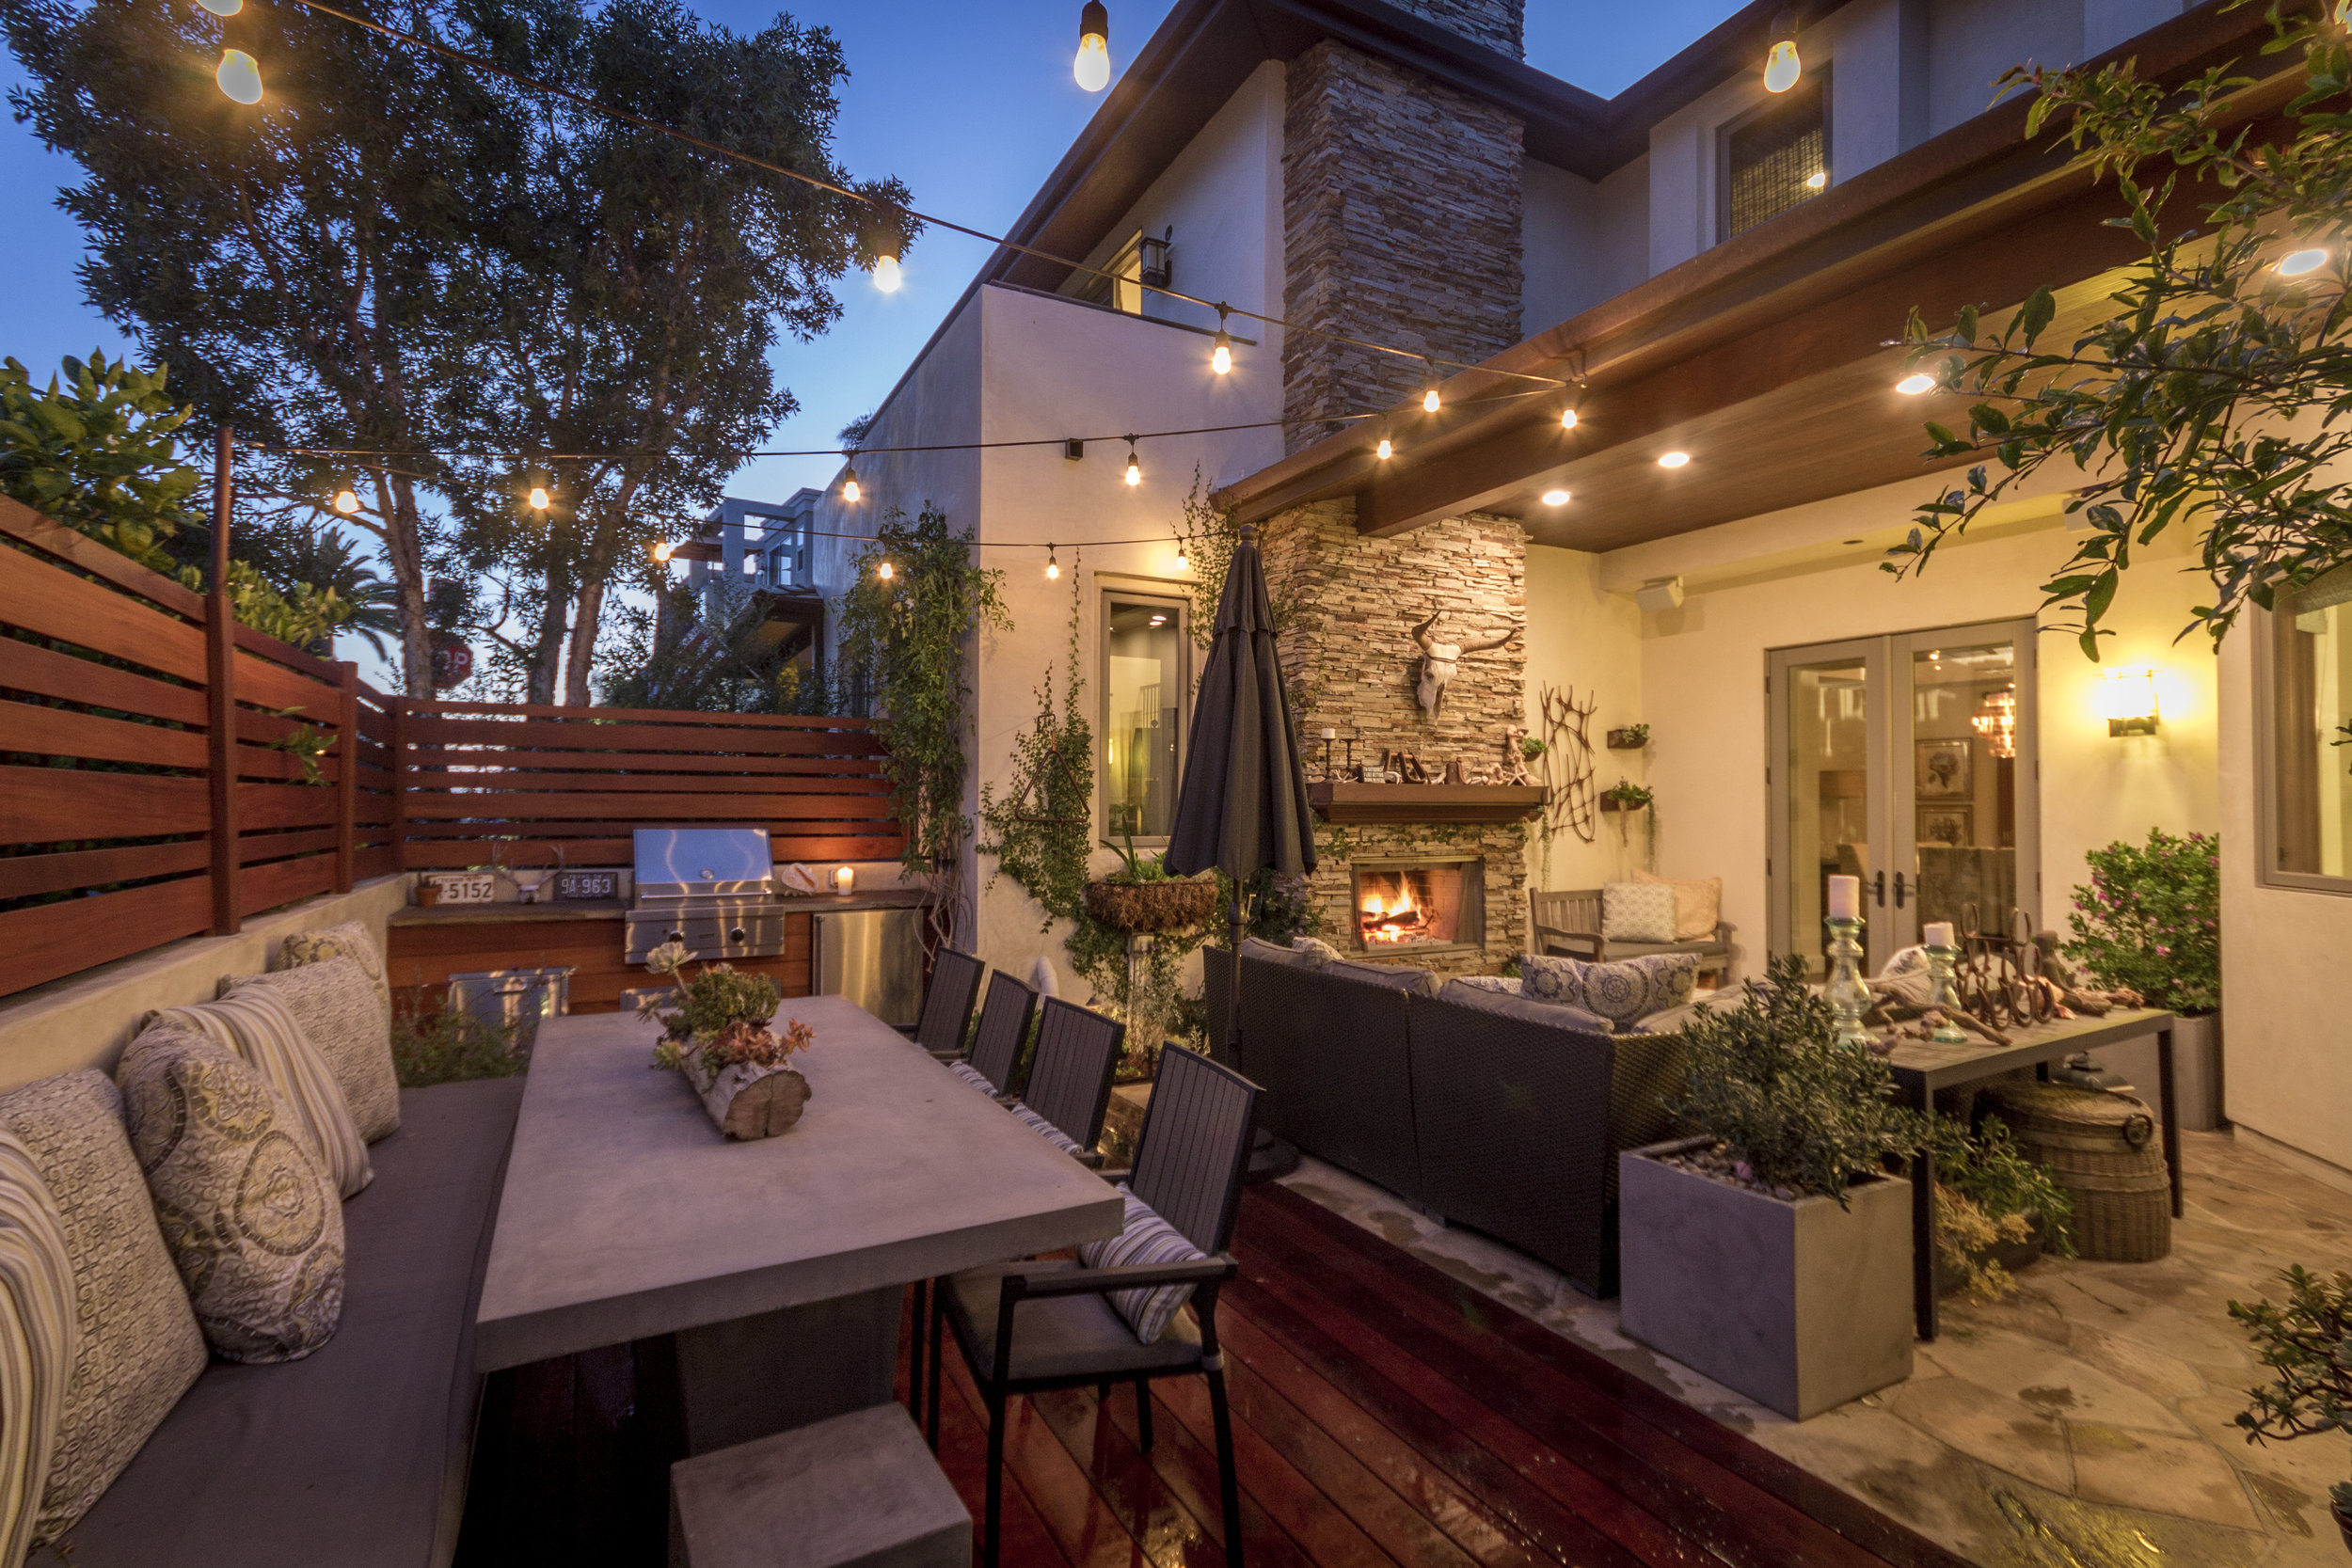 Rustic Modern - Manhattan BeachBBQ and BarOutdoor FireplaceCement tableIpe wood decking and removable fence